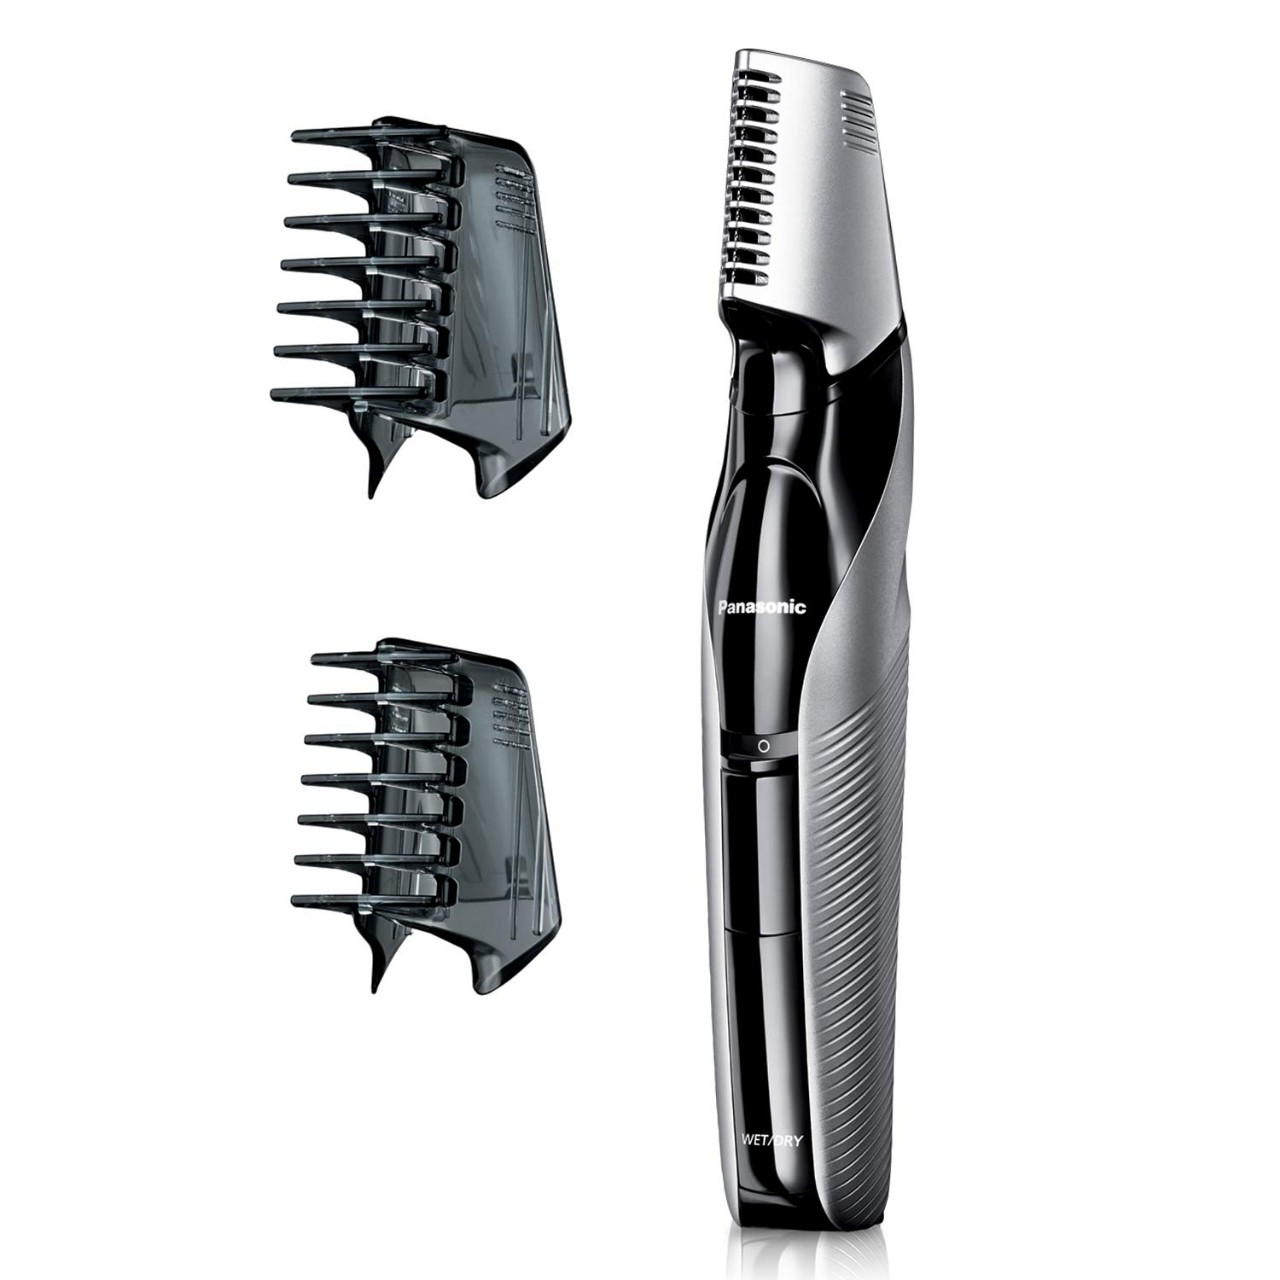 Panasonic Electric Body Groomer and Trimmer for Men ER-GK60-S, Cordless, Showerproof with 3 Comb